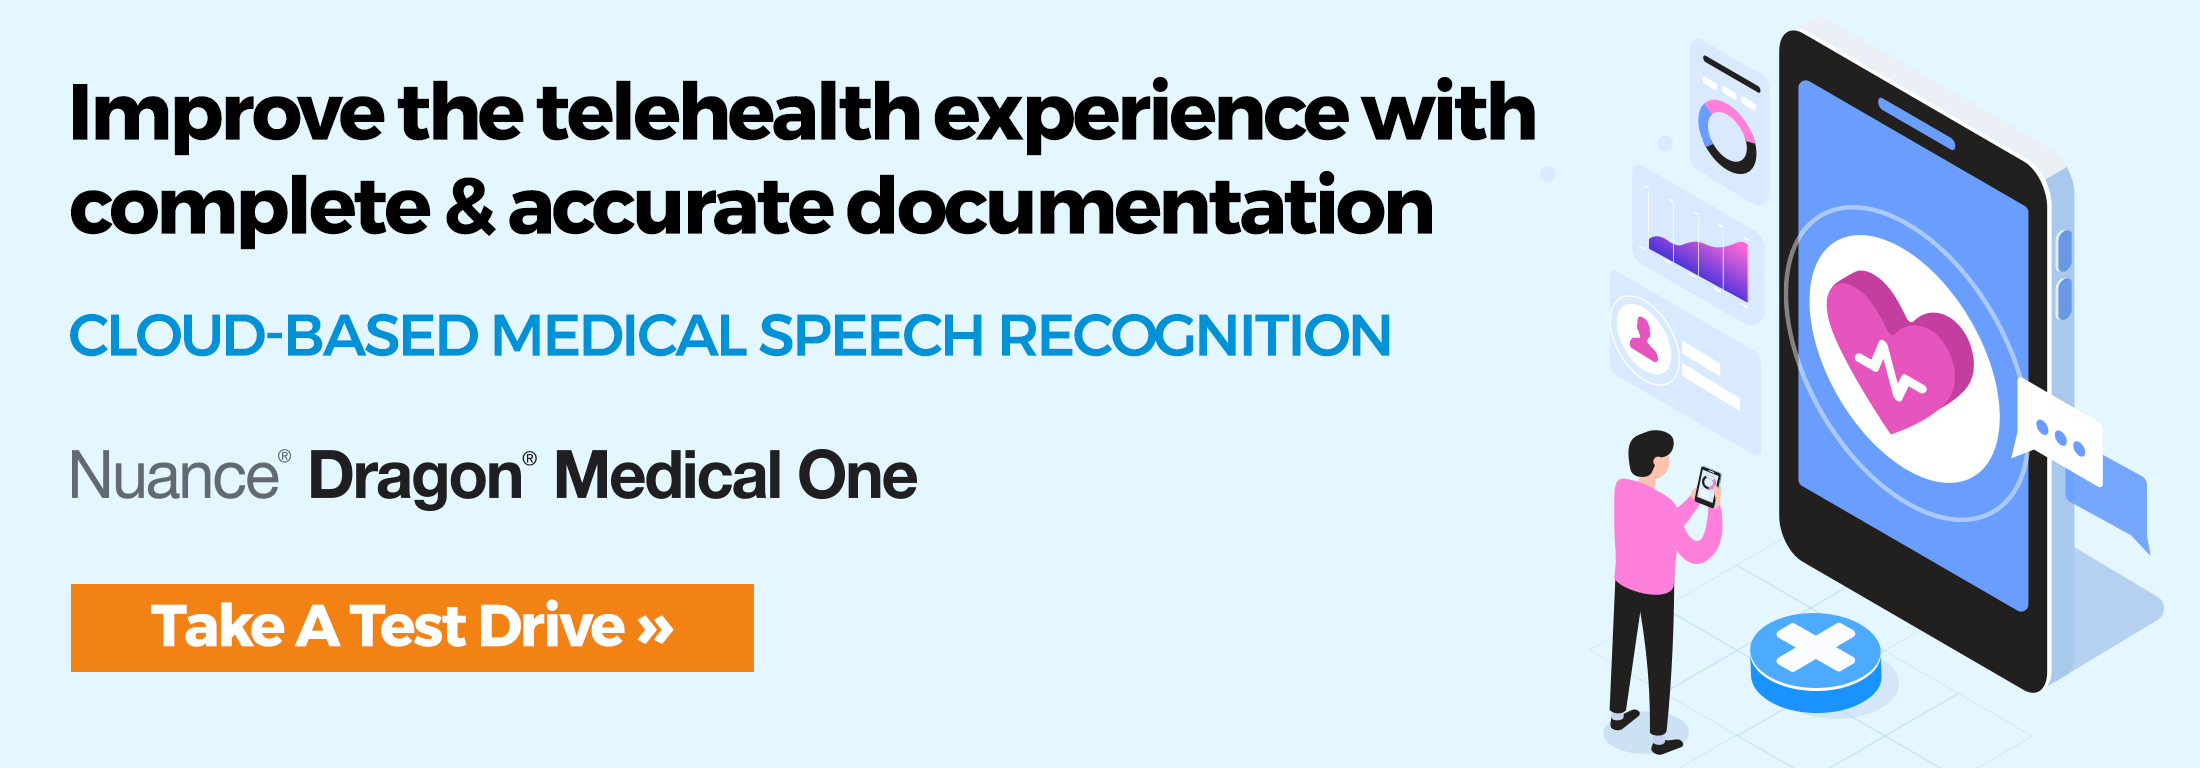 Improve the telehealth experience with complete & accurate documentation - Dragon Medical One